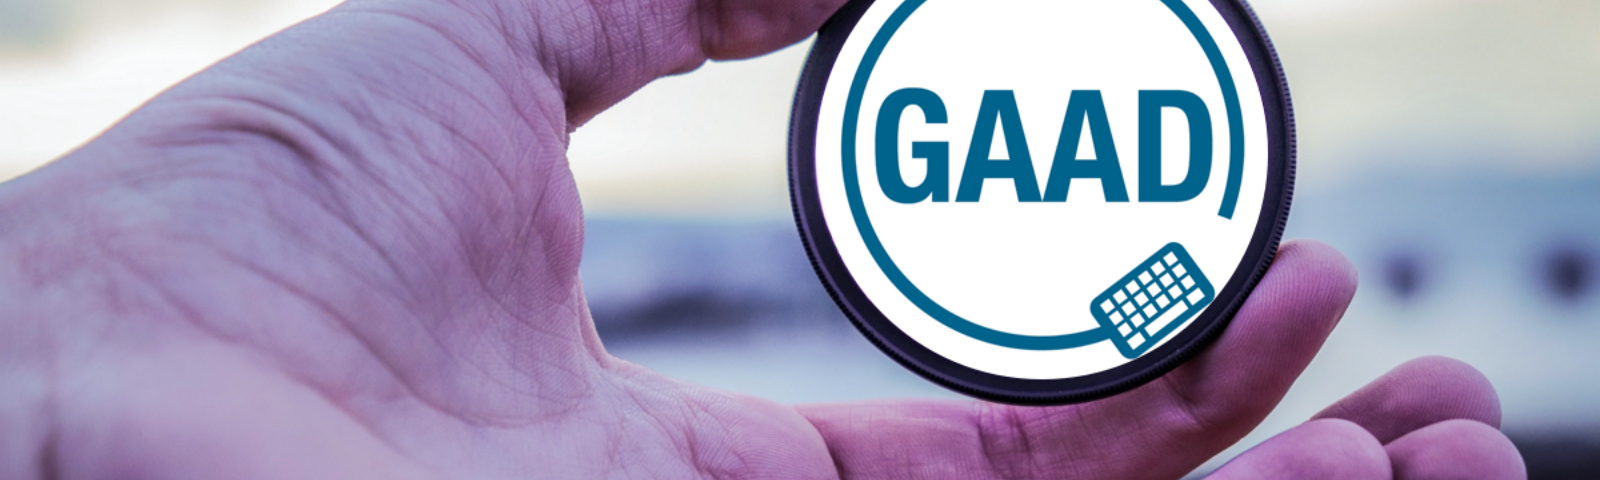 Man holding a lens, with the Global Accessibility Awareness Day logo added.